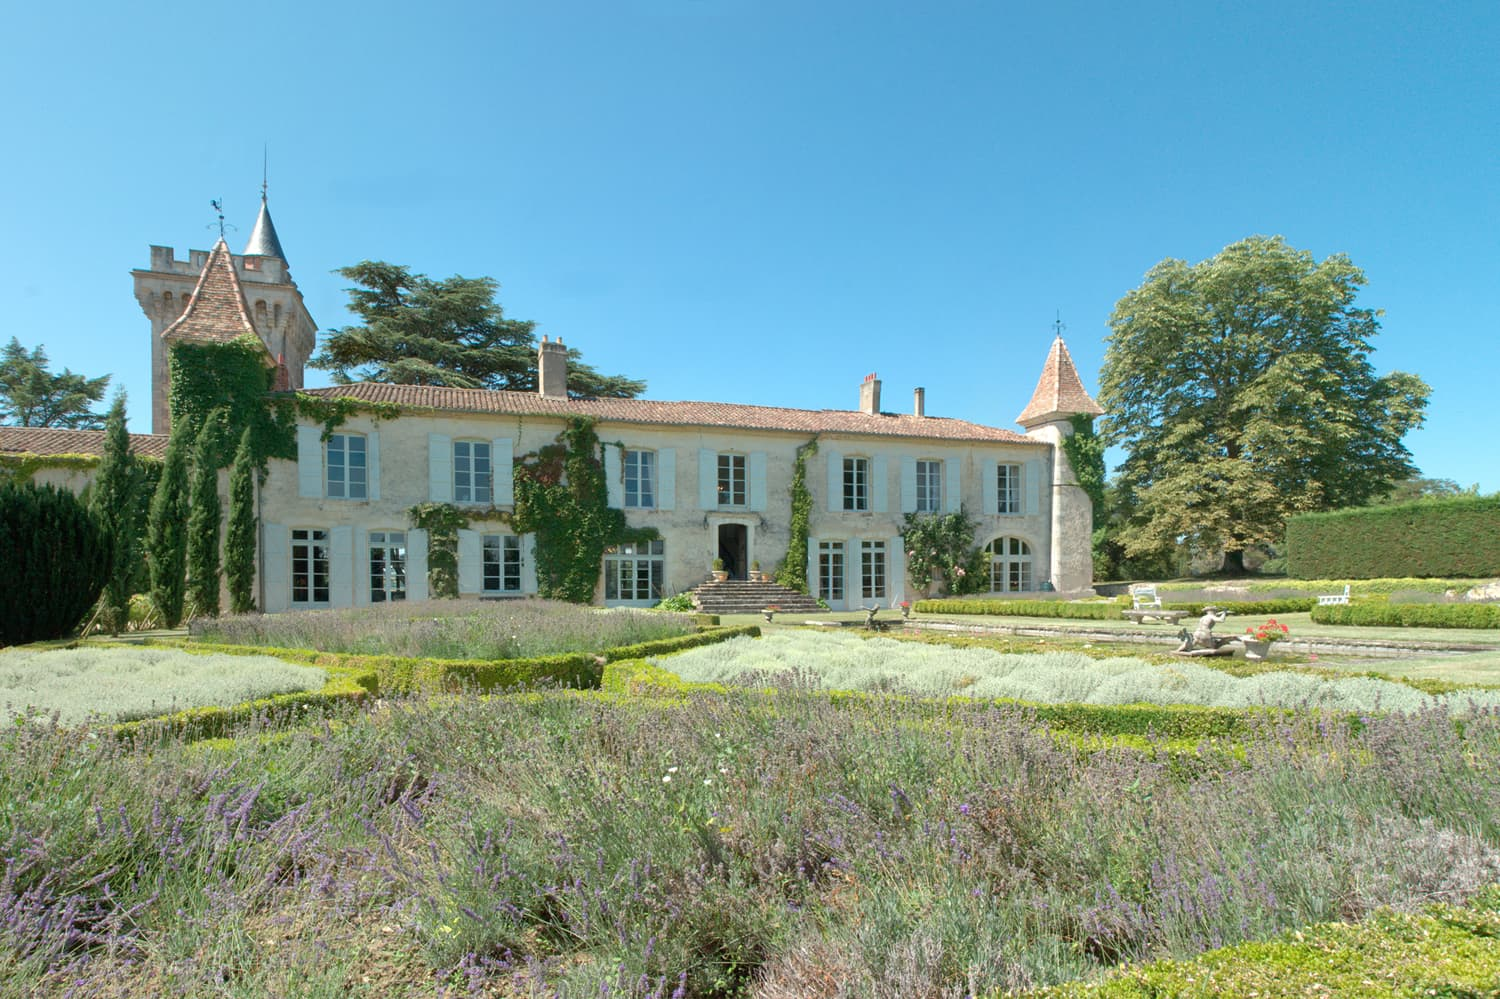 Holiday château in France